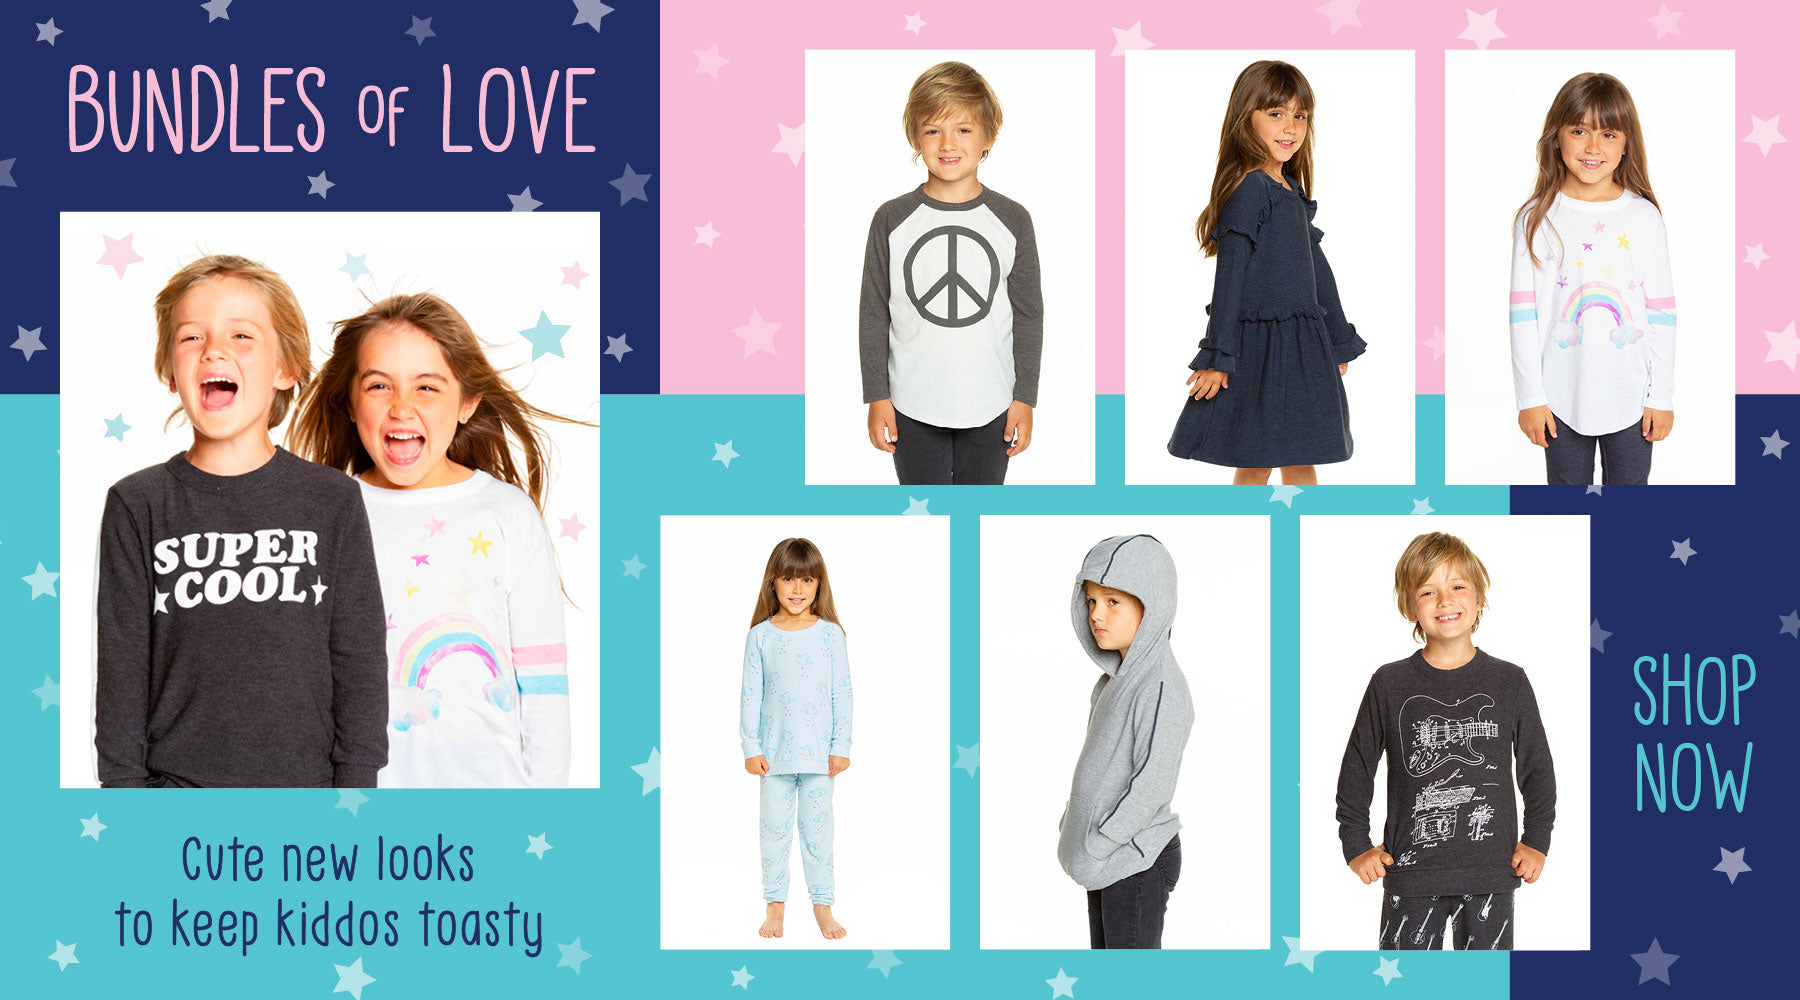 Cool kids deserve cool clothes. Shop what's new & cozy in Chaser Kids.